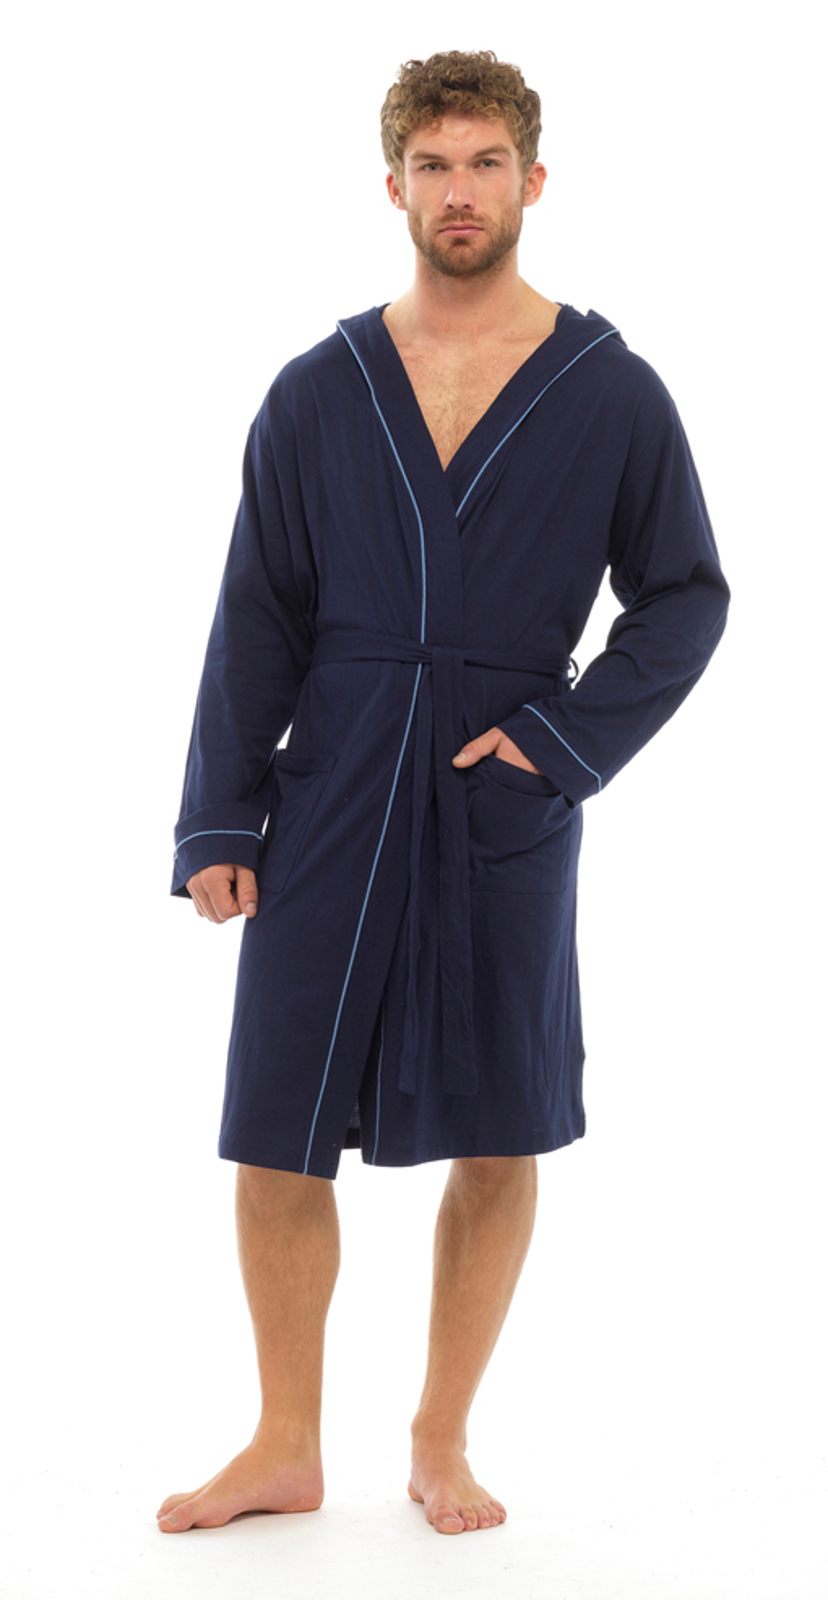 Find mens hooded robe at ShopStyle. Shop the latest collection of mens hooded robe from the most popular stores - all in one place.